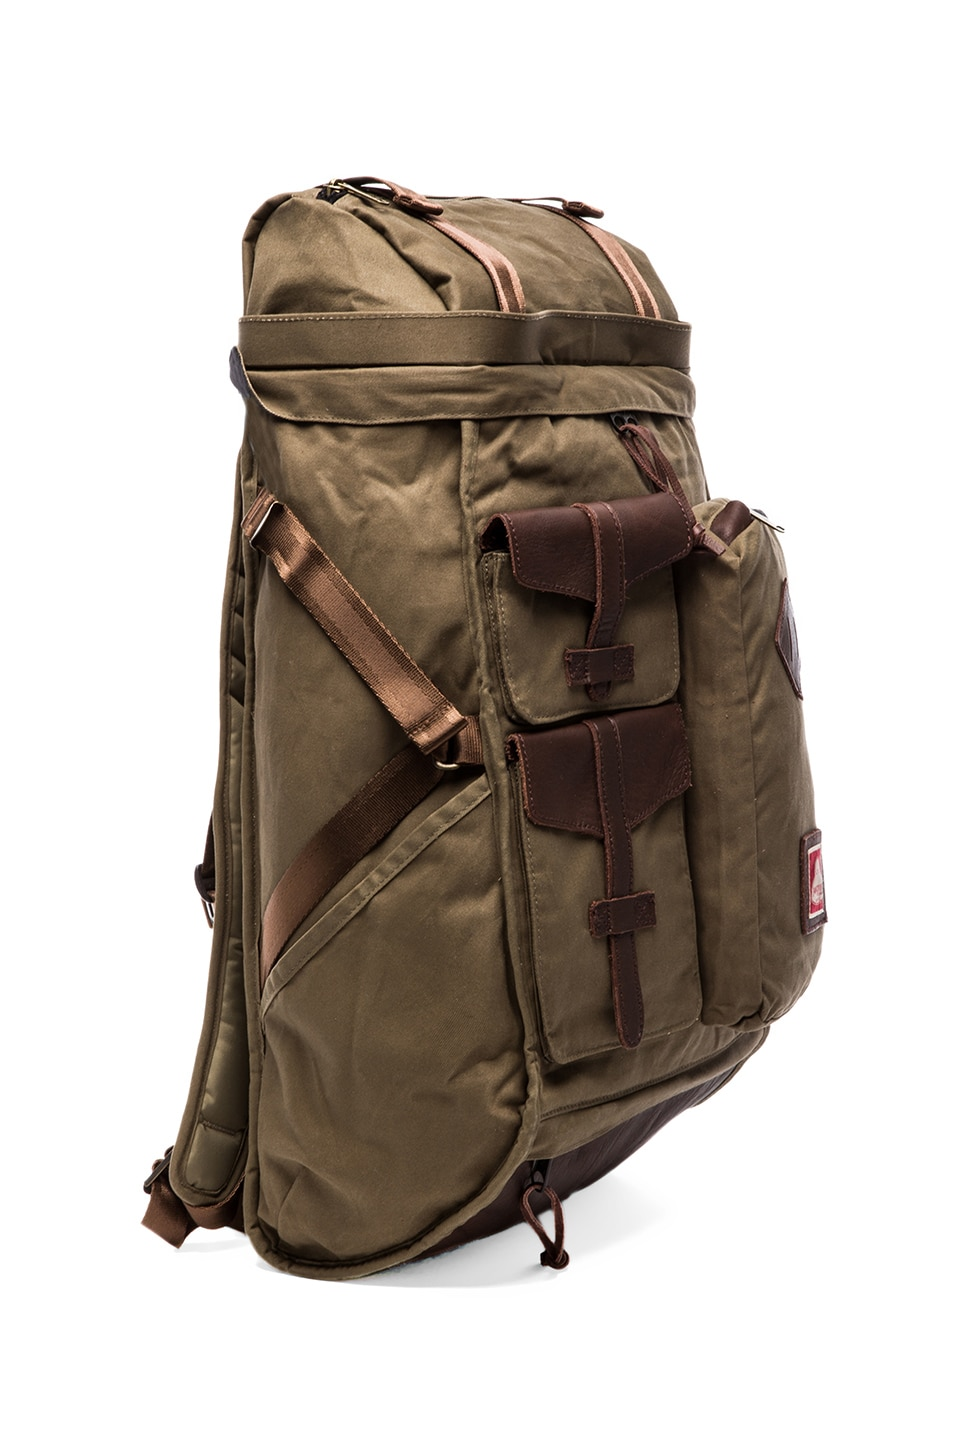 Army Jansport Backpacks - Crazy Backpacks